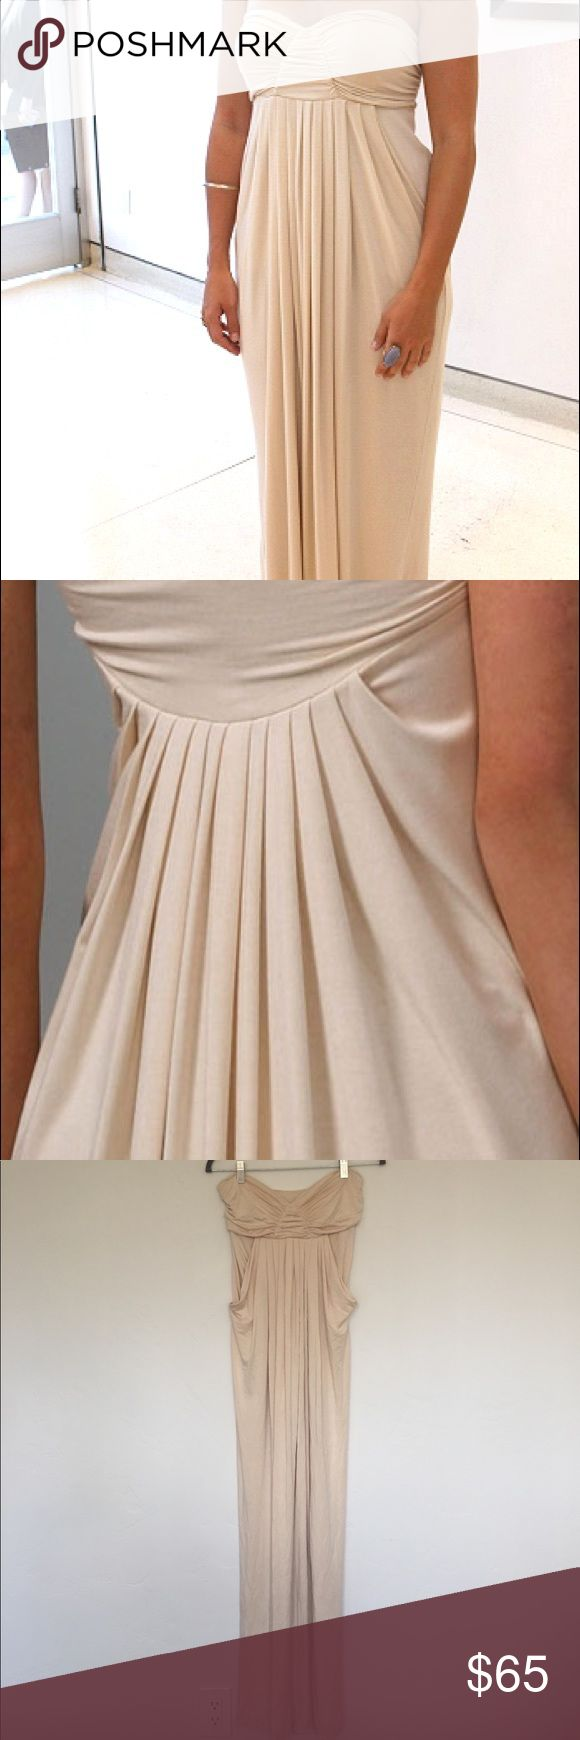 """Rachel Pally For Shopbop Long Fortuna Maxi Dress I had a seamstress add straps but have taken them off since then. Last two pictures show where the straps were. Completely unnoticeable when worn. 53"""" Long from underarm to hem Rachel Pally Dresses Maxi"""